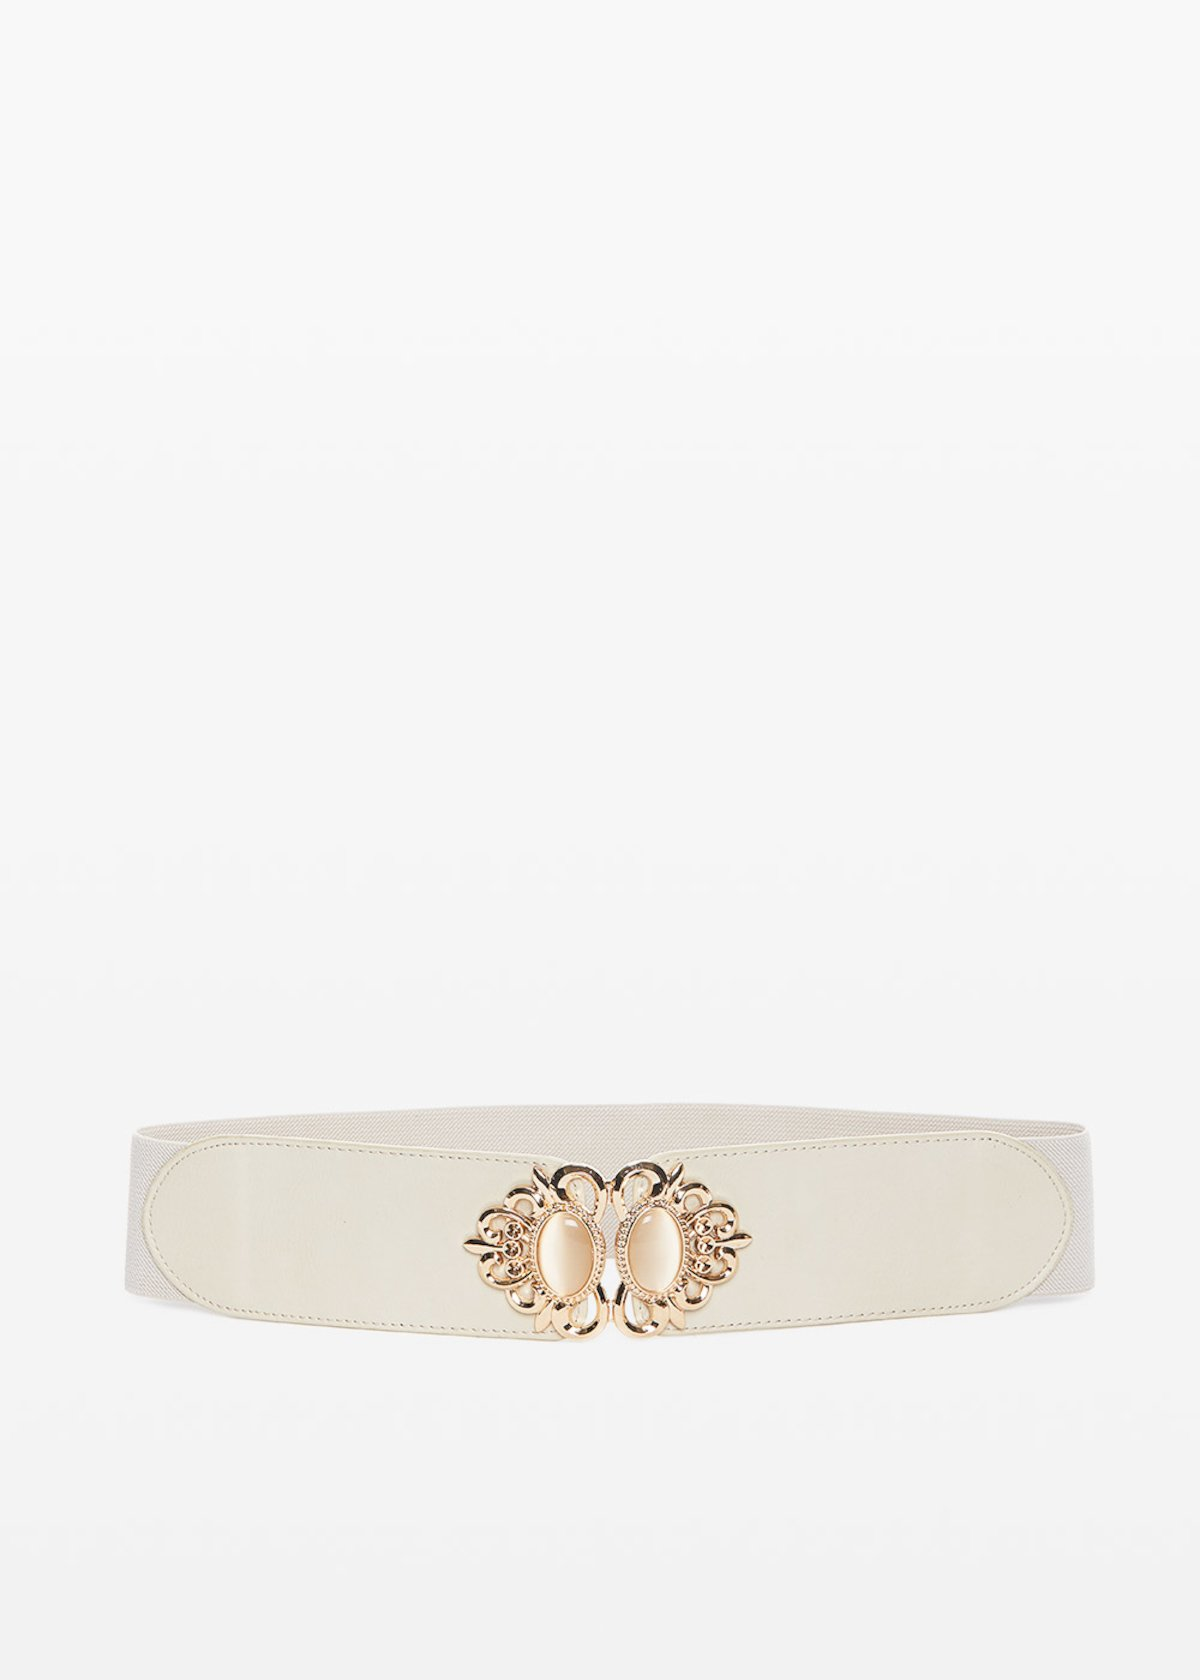 Charlott faux leather belt with light gold closure - Light Beige - Woman - Category image